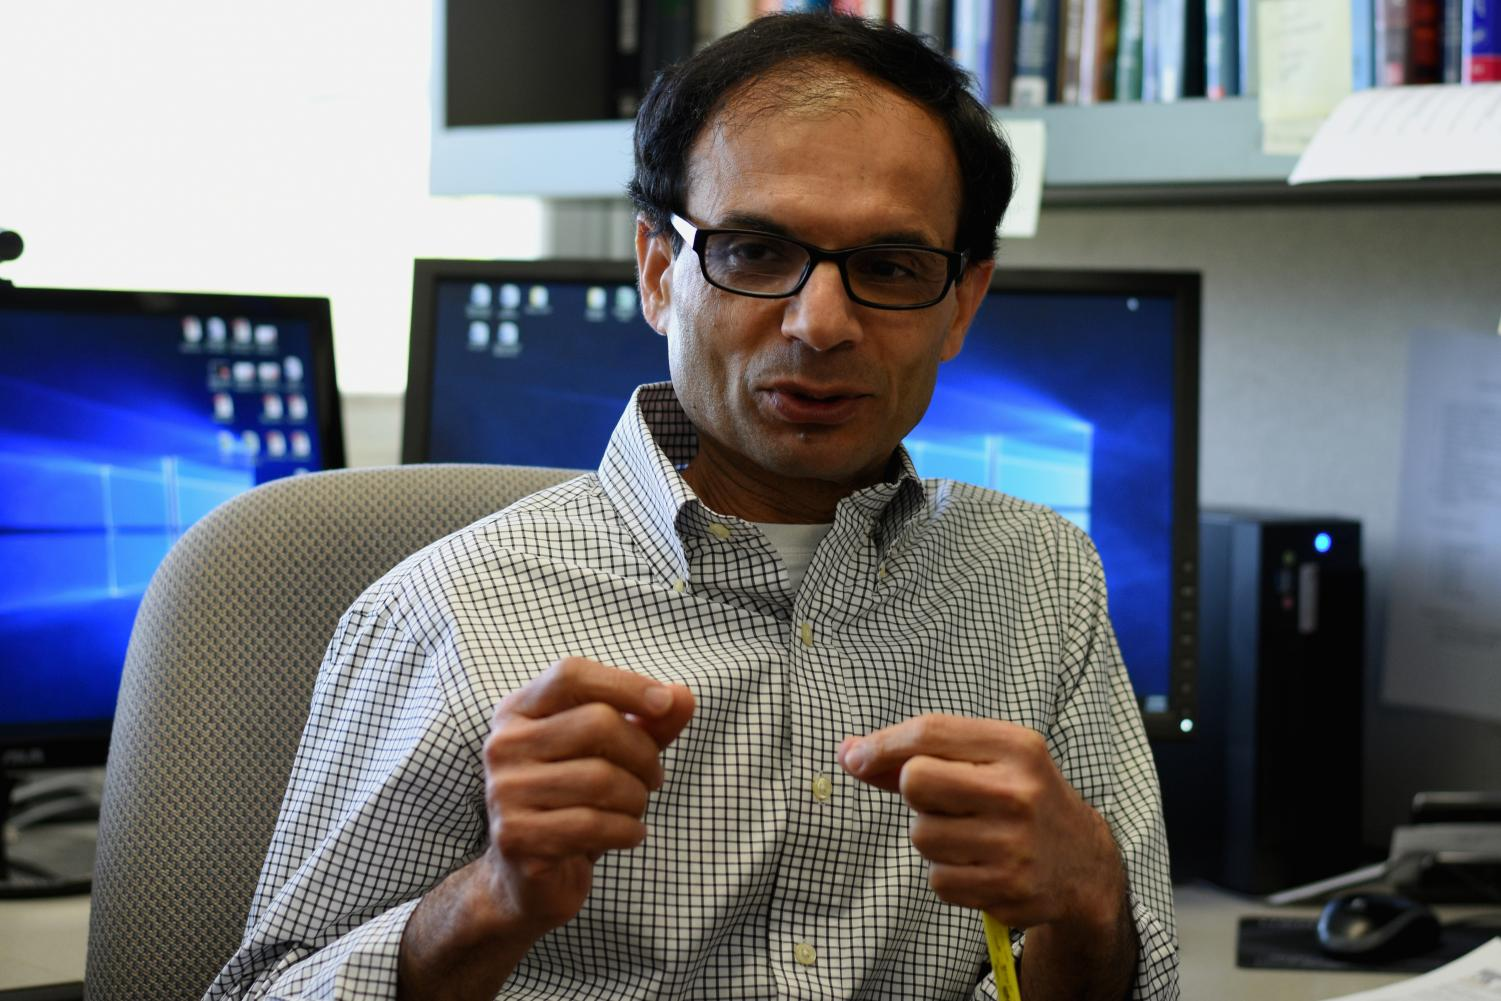 Professor of biological systems engineering Shyam Sablani discusses a new spoiled milk detector May 8 in the LJ Smith Building. These detectors will change color so that consumers can tell when the milk spoils.